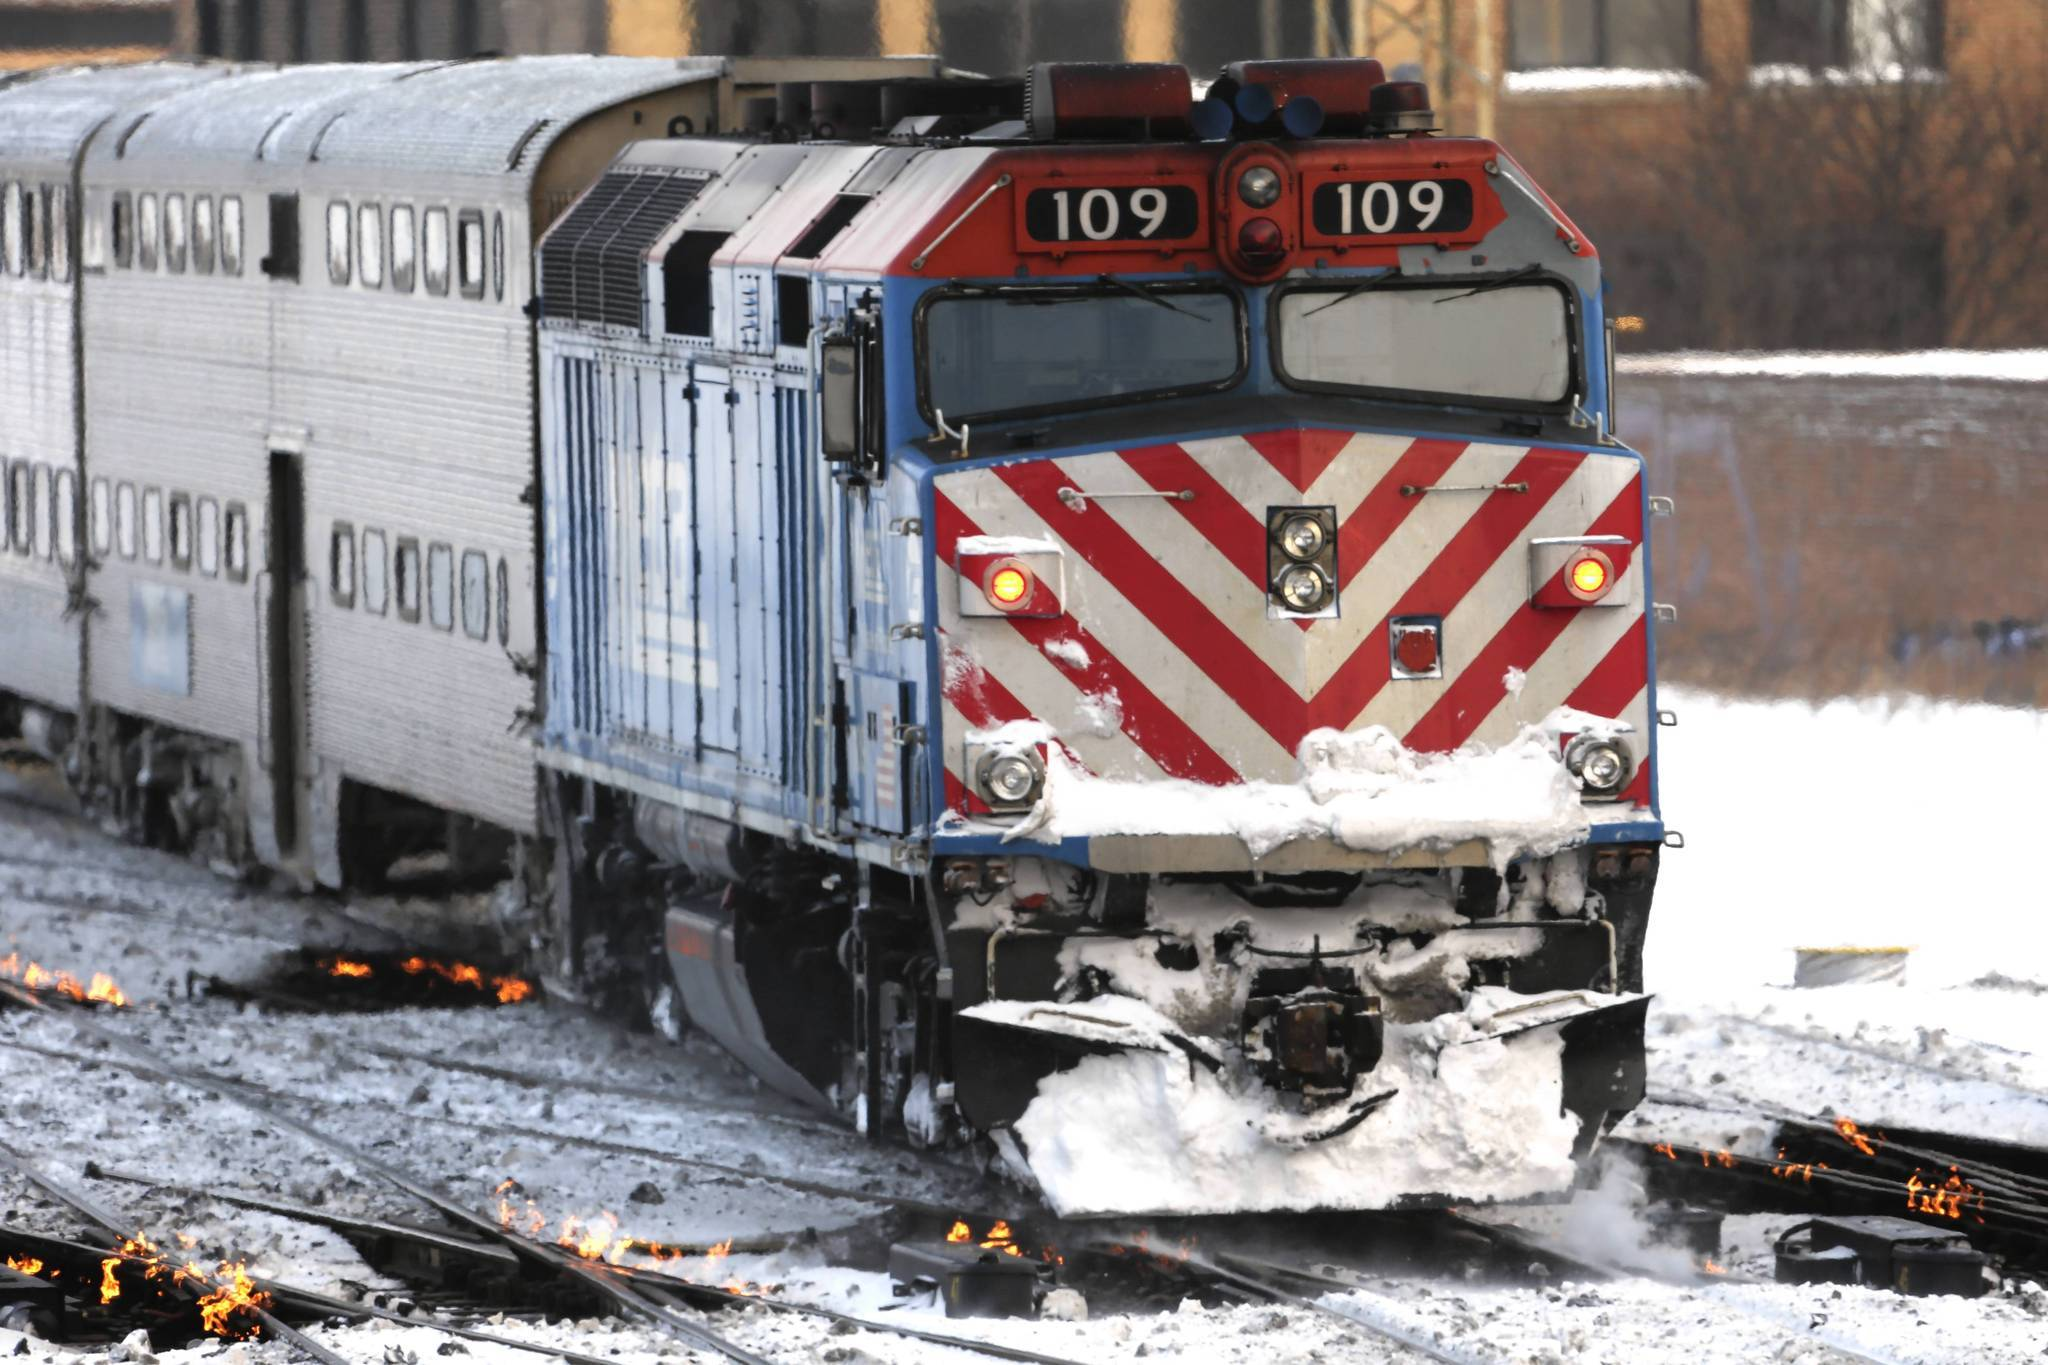 The federal government said Monday that it will take action this year that could eventually require Metra and other railroads to install inward-facing video cameras in locomotives to focus on engineers and help accident investigators determine if their was dangerous behavior, such as sleeping or texting.